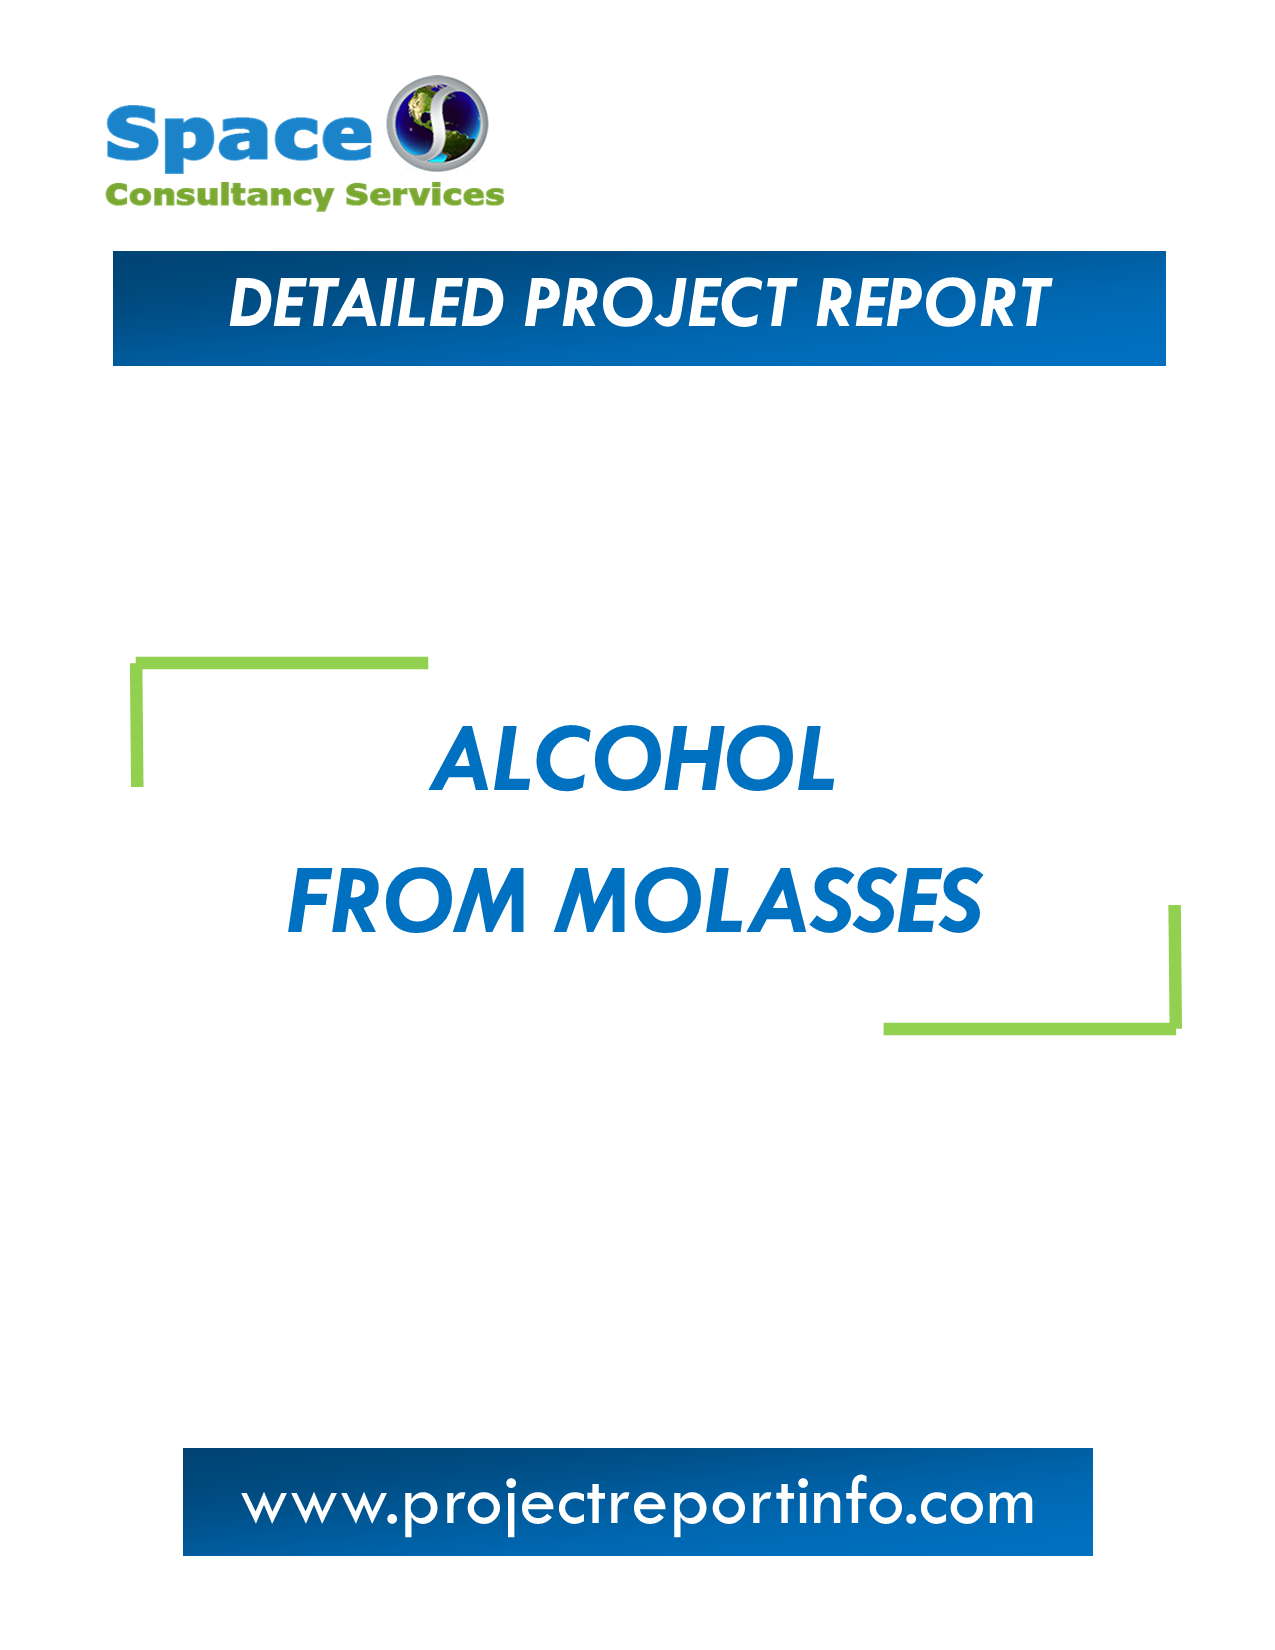 Project Report on Alcohol from Molasses Manufacturing